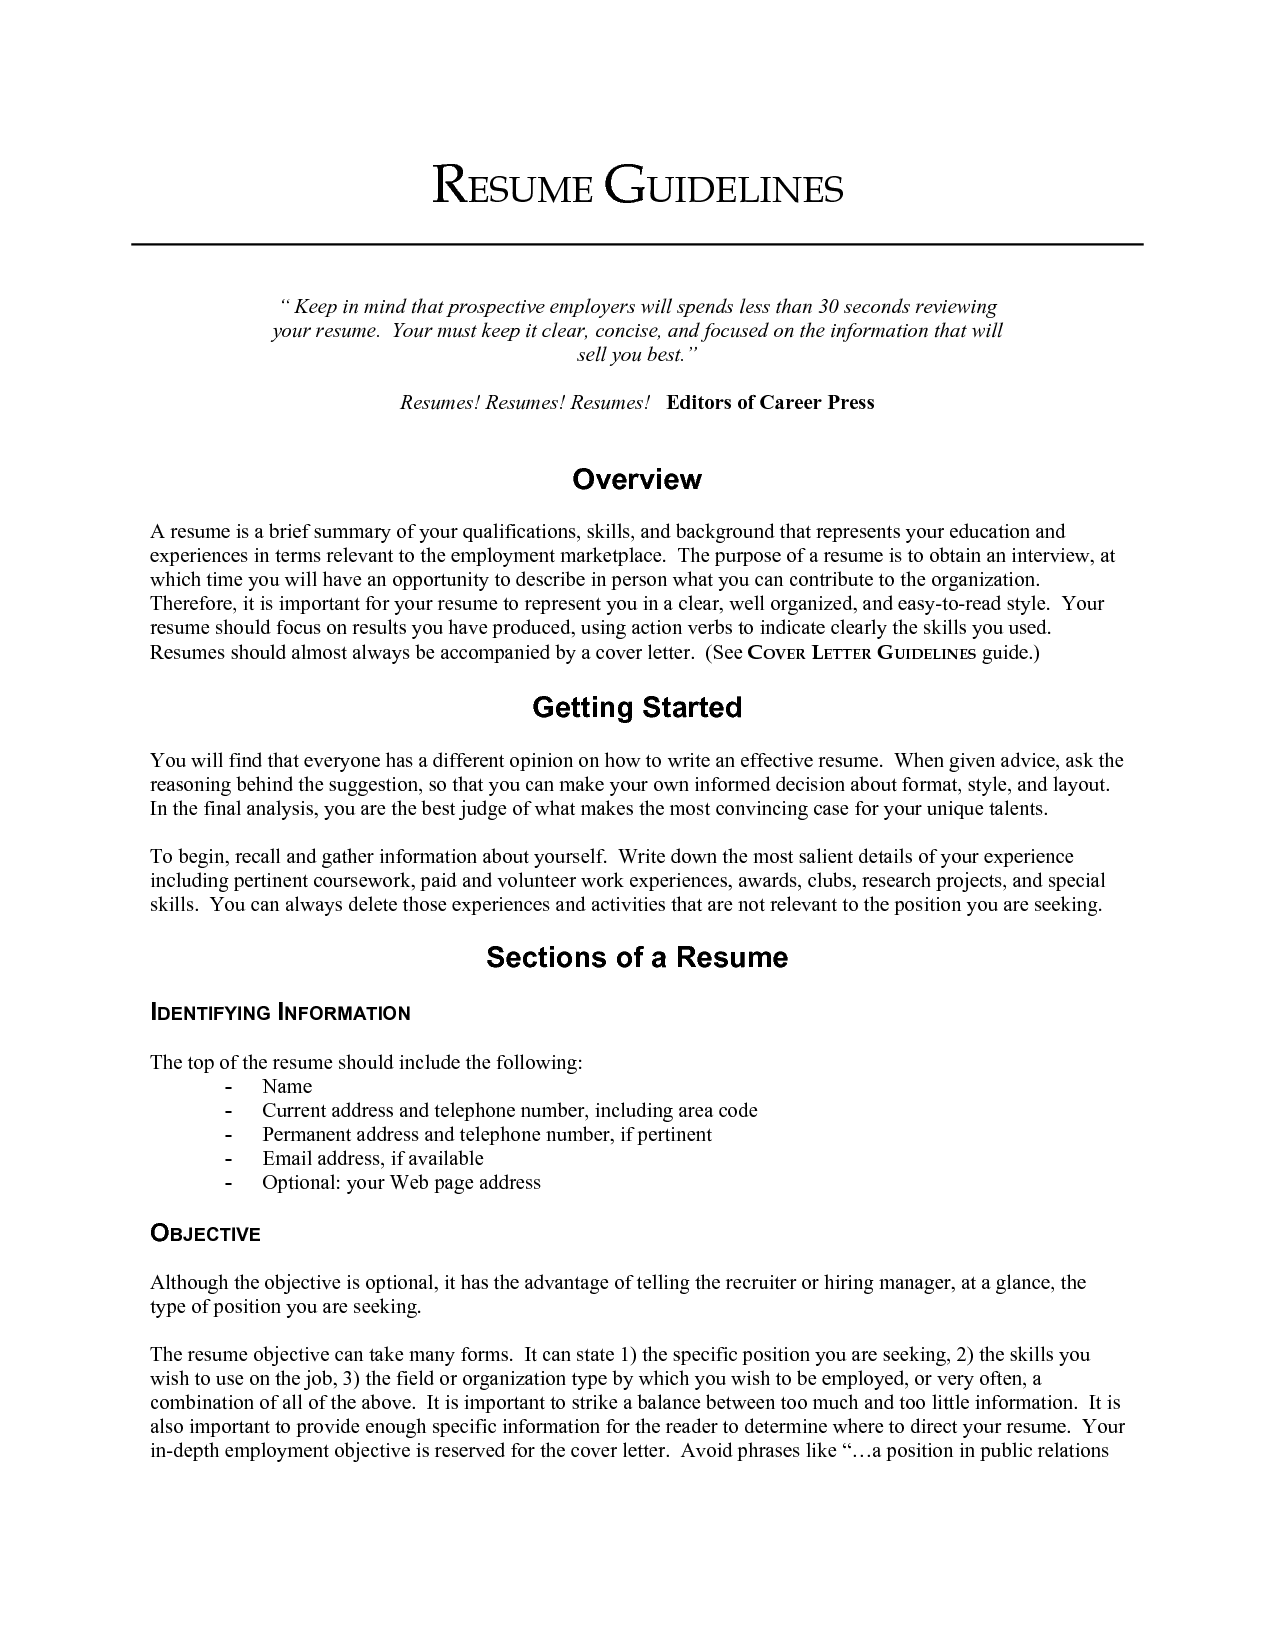 Sample Resume Objective Statement Objective Lines On Resumes Resume Builderresume Objective Examples